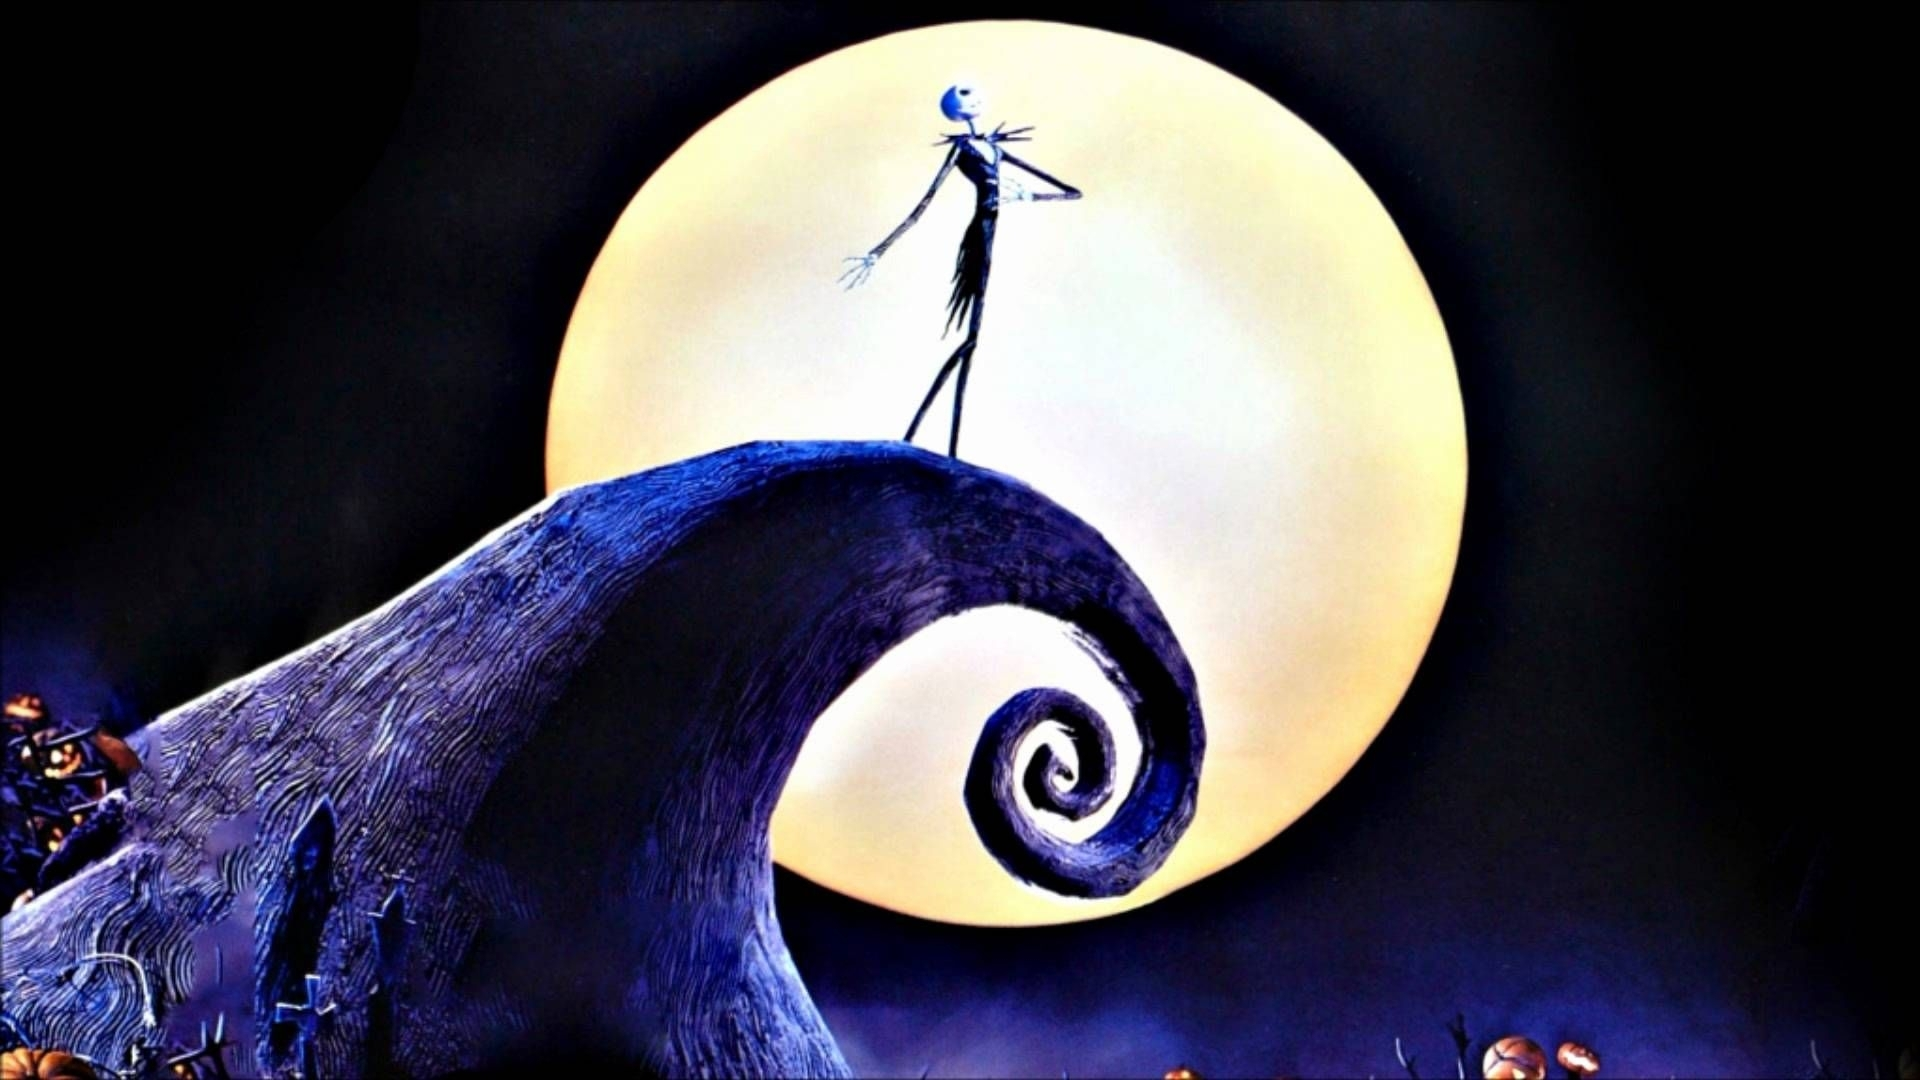 nightmare before christmas halloween wallpapers hd wallpaper for